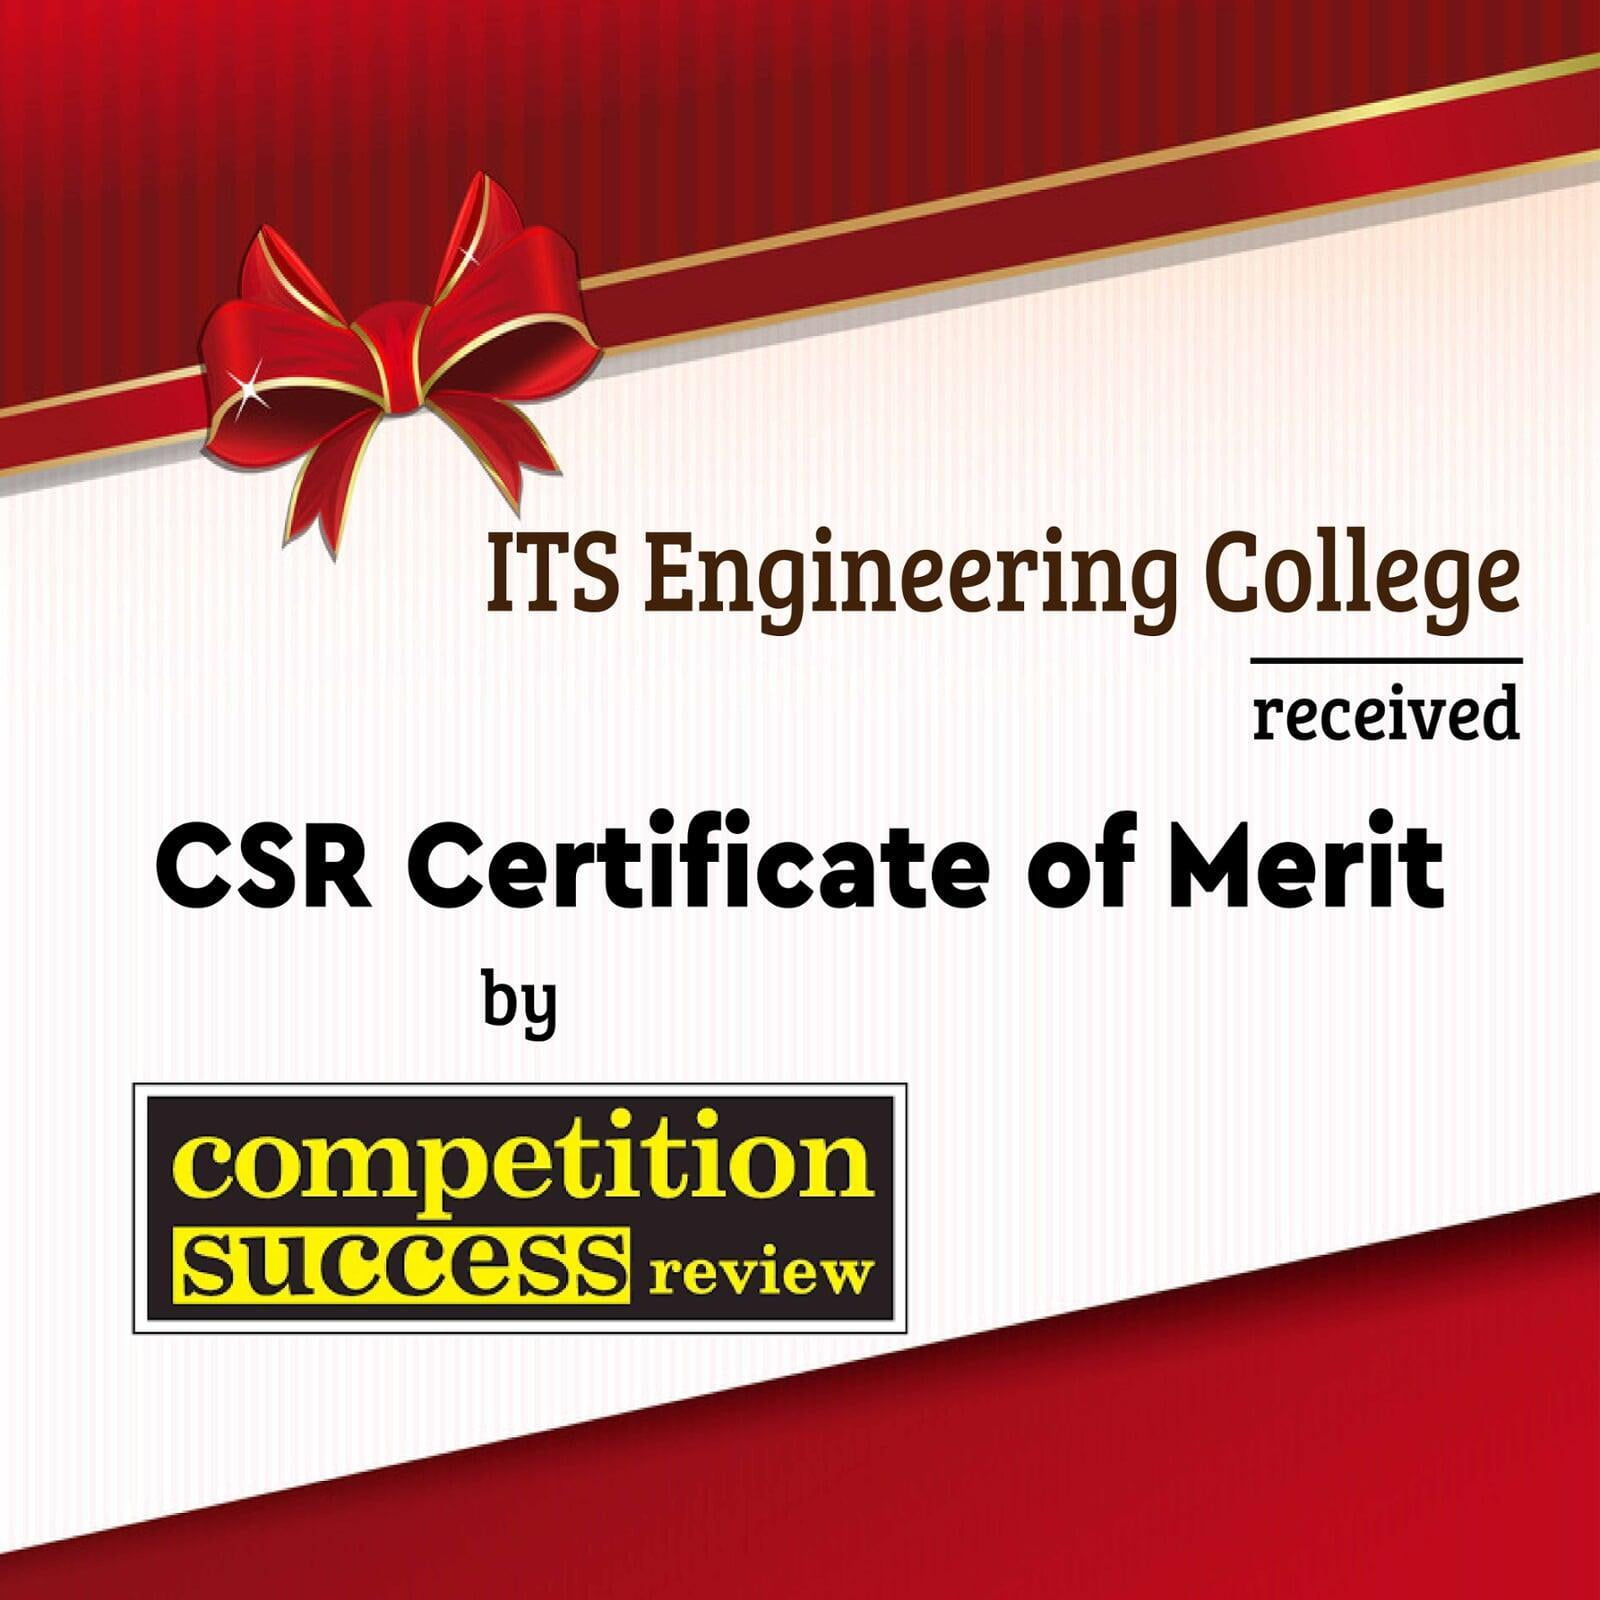 Certificate of Merit by Competition Success Review 2020-21